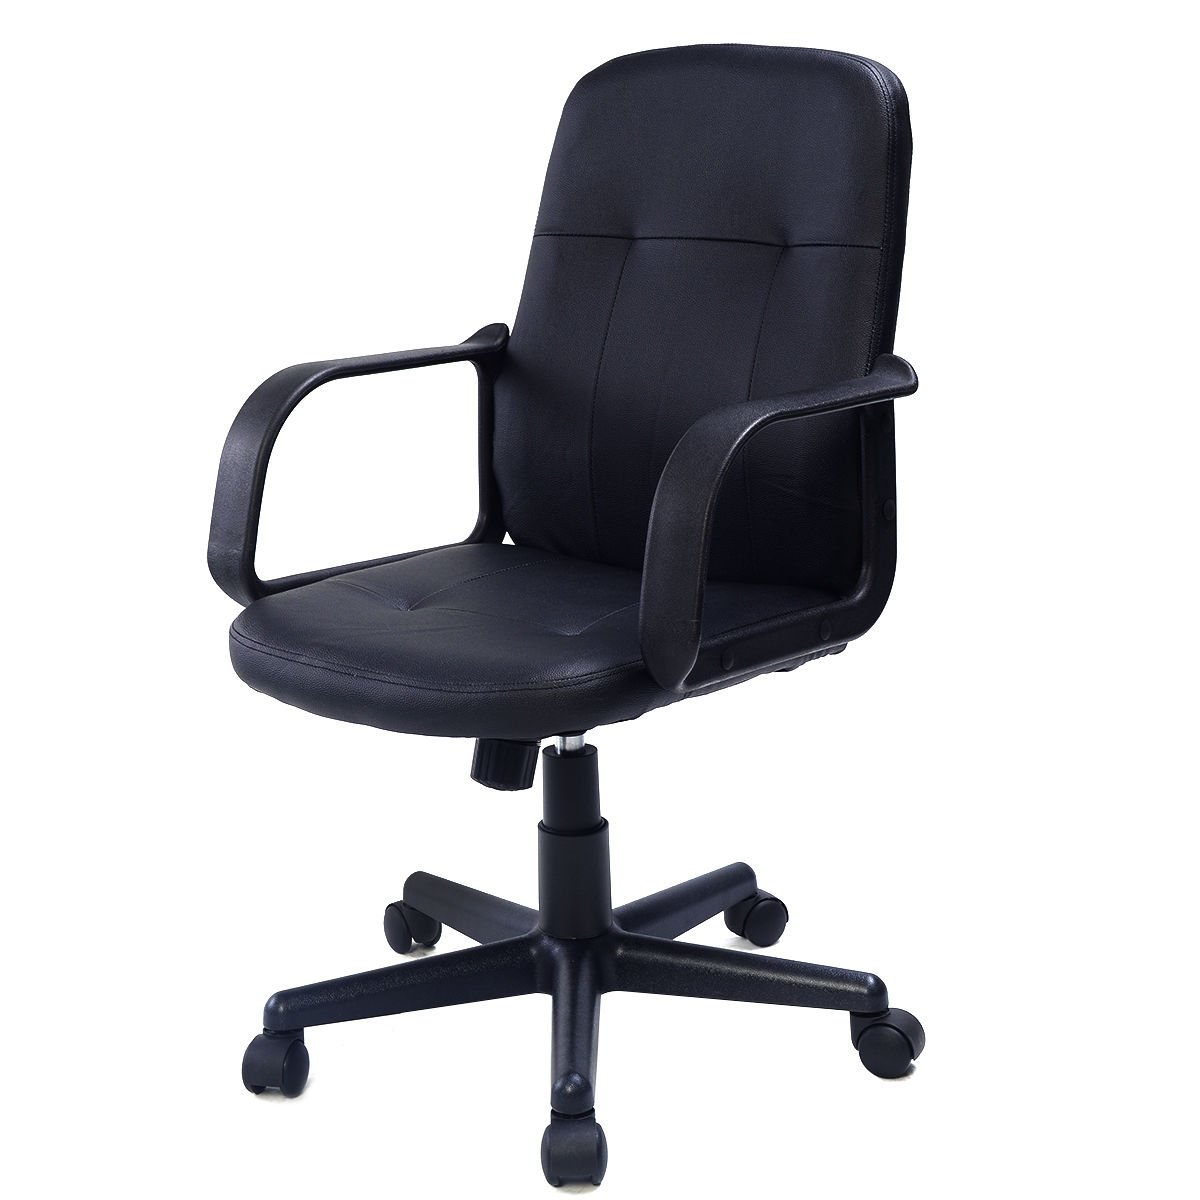 Best office chair 2016 - 10 Best Office Chairs 2016